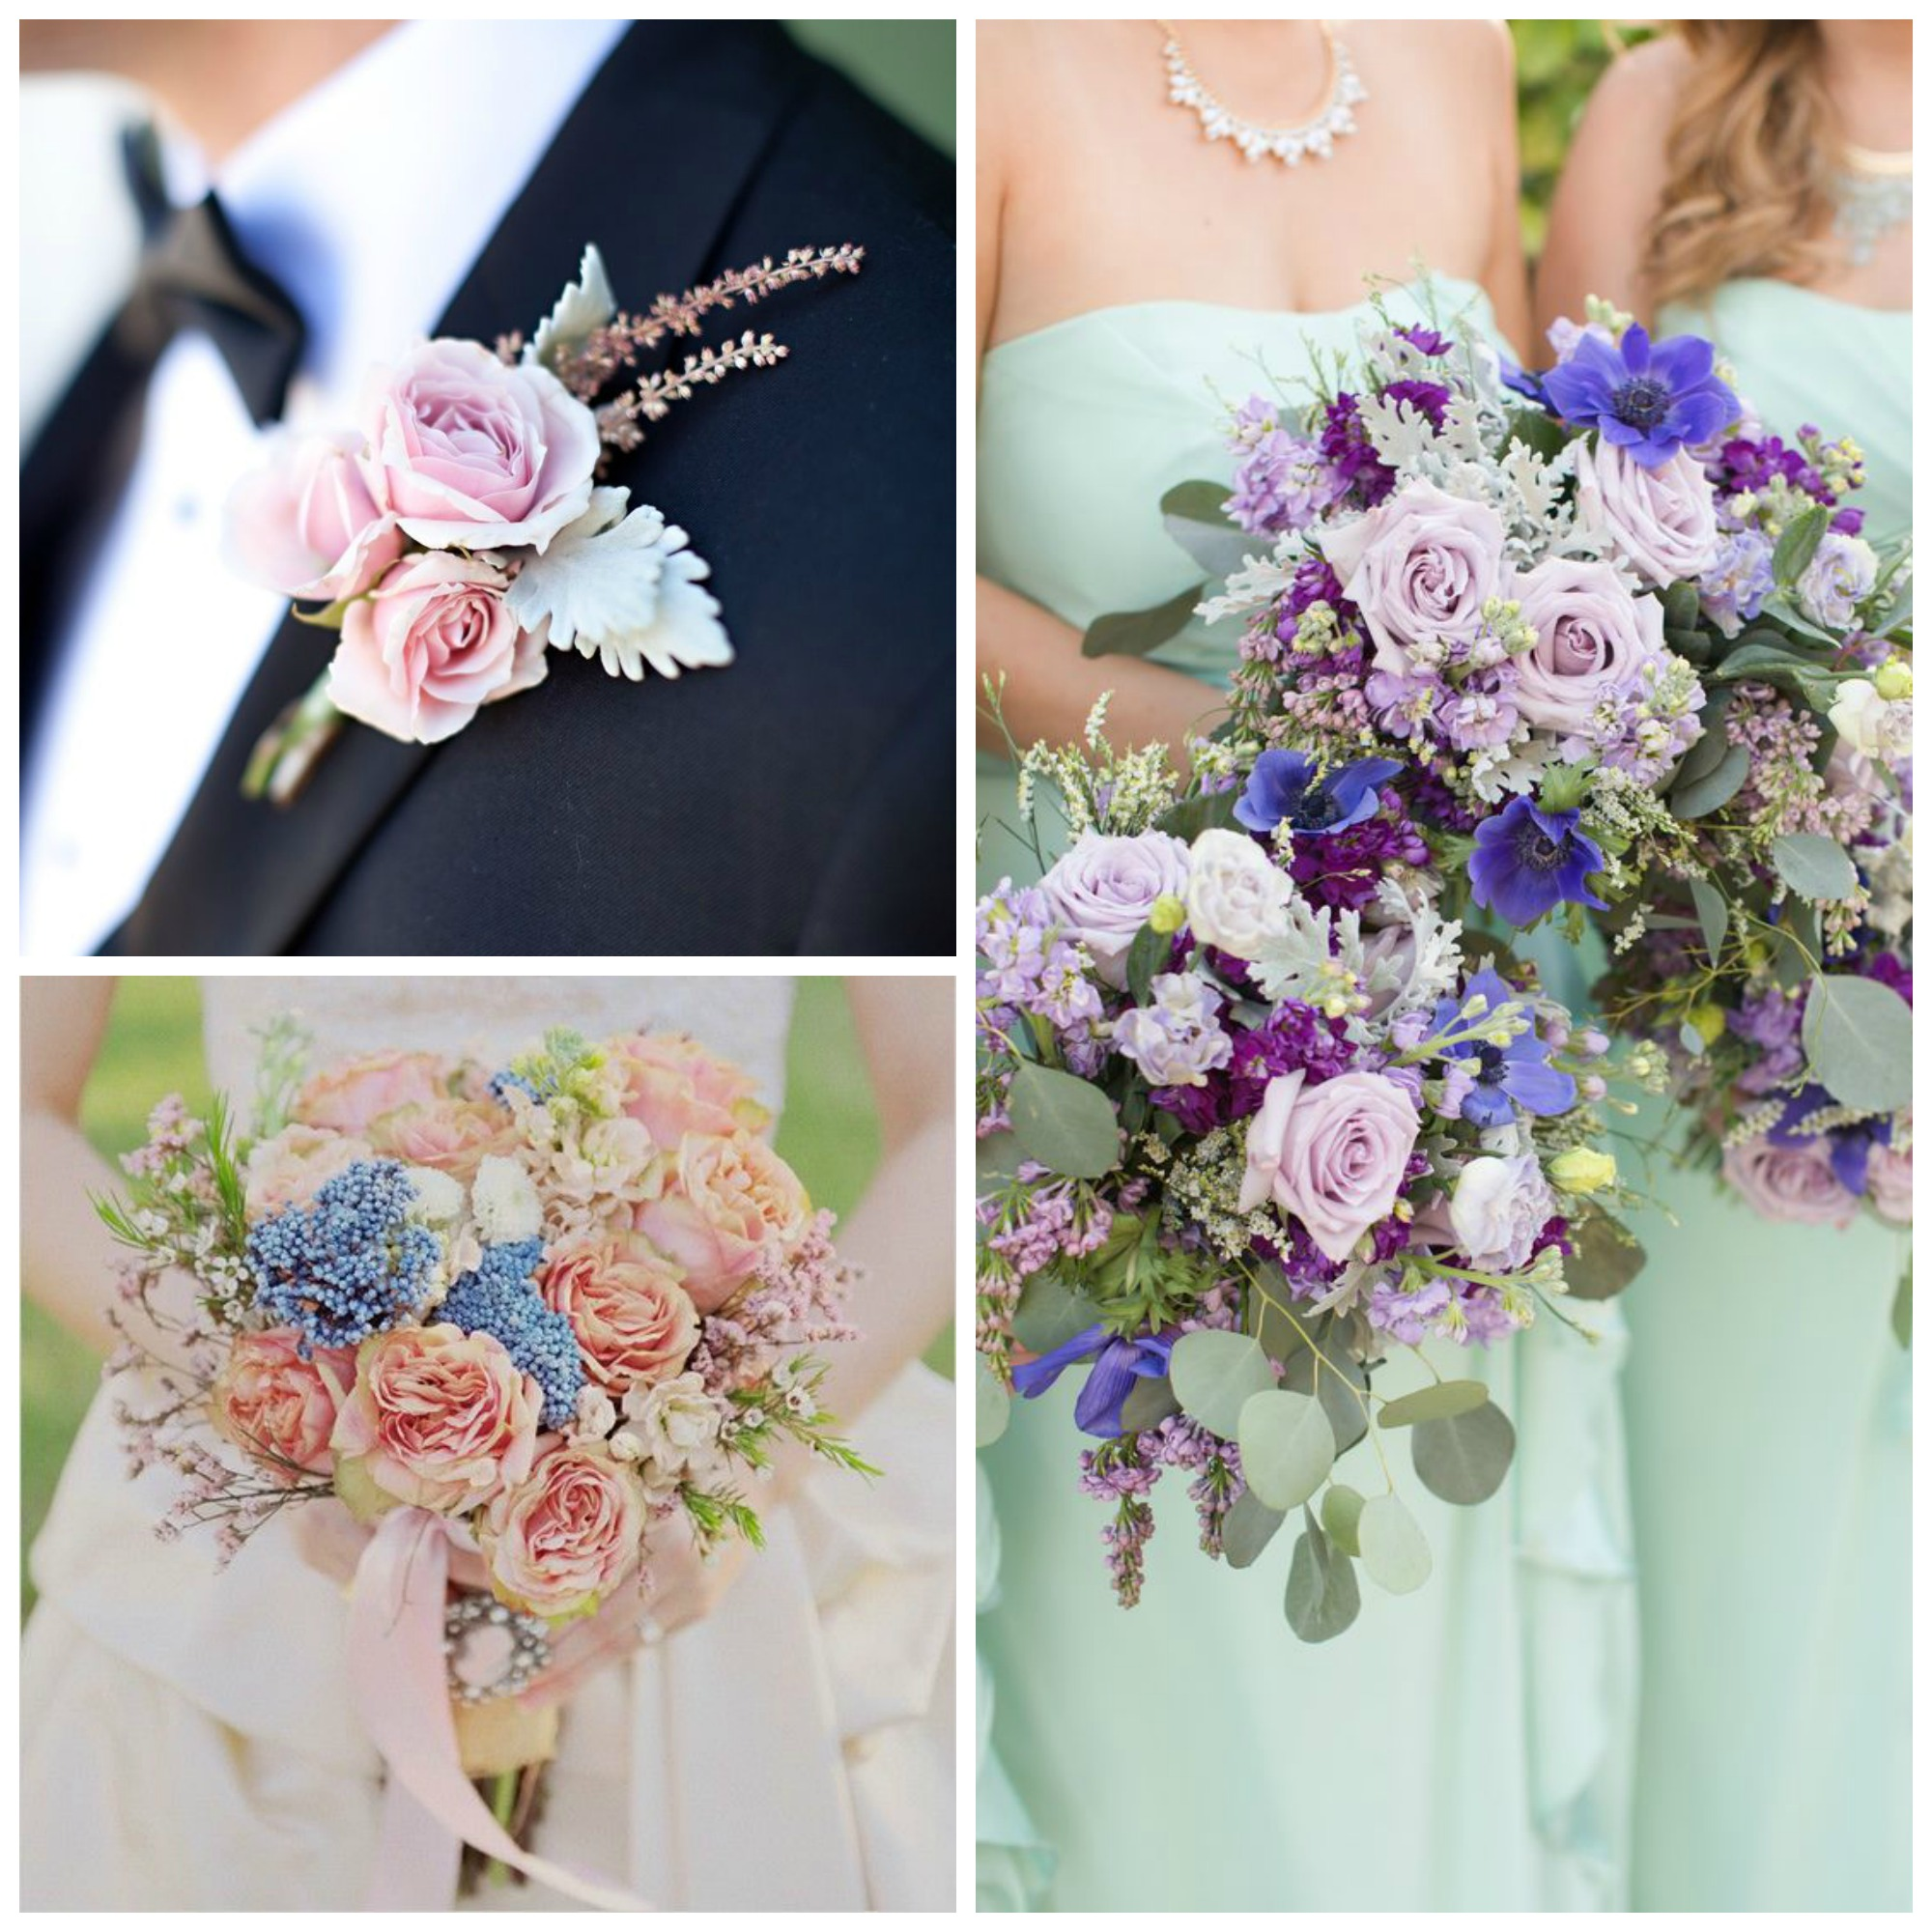 romantic wedding flowers collage in pastel colors